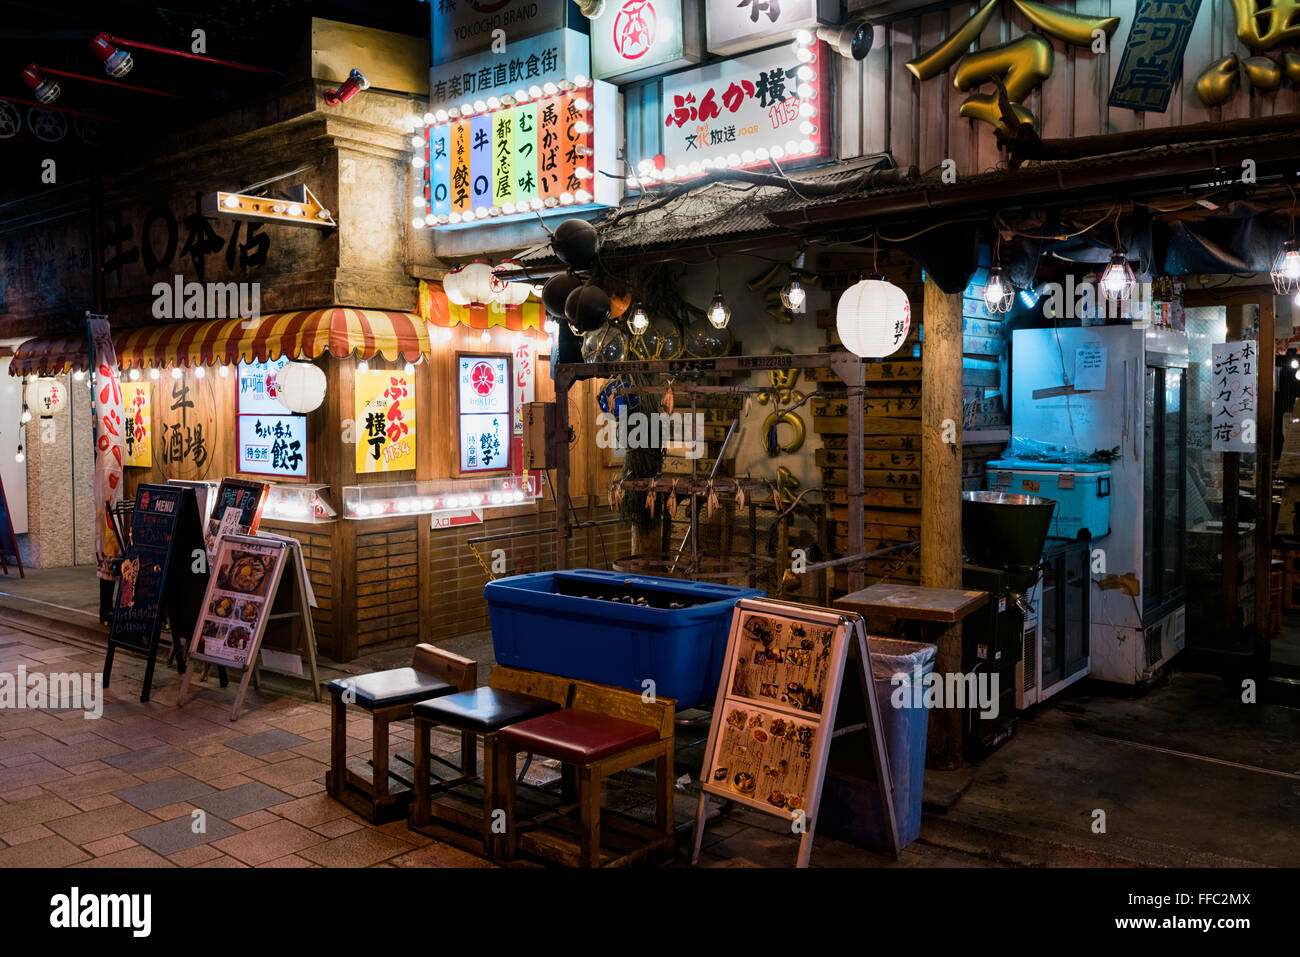 Tokyo, Japan - January 21, 2016: Japanese restaurants at the Yakitori Alley in Yurakucho Under the JR Yamanote Tracks. - Stock Image